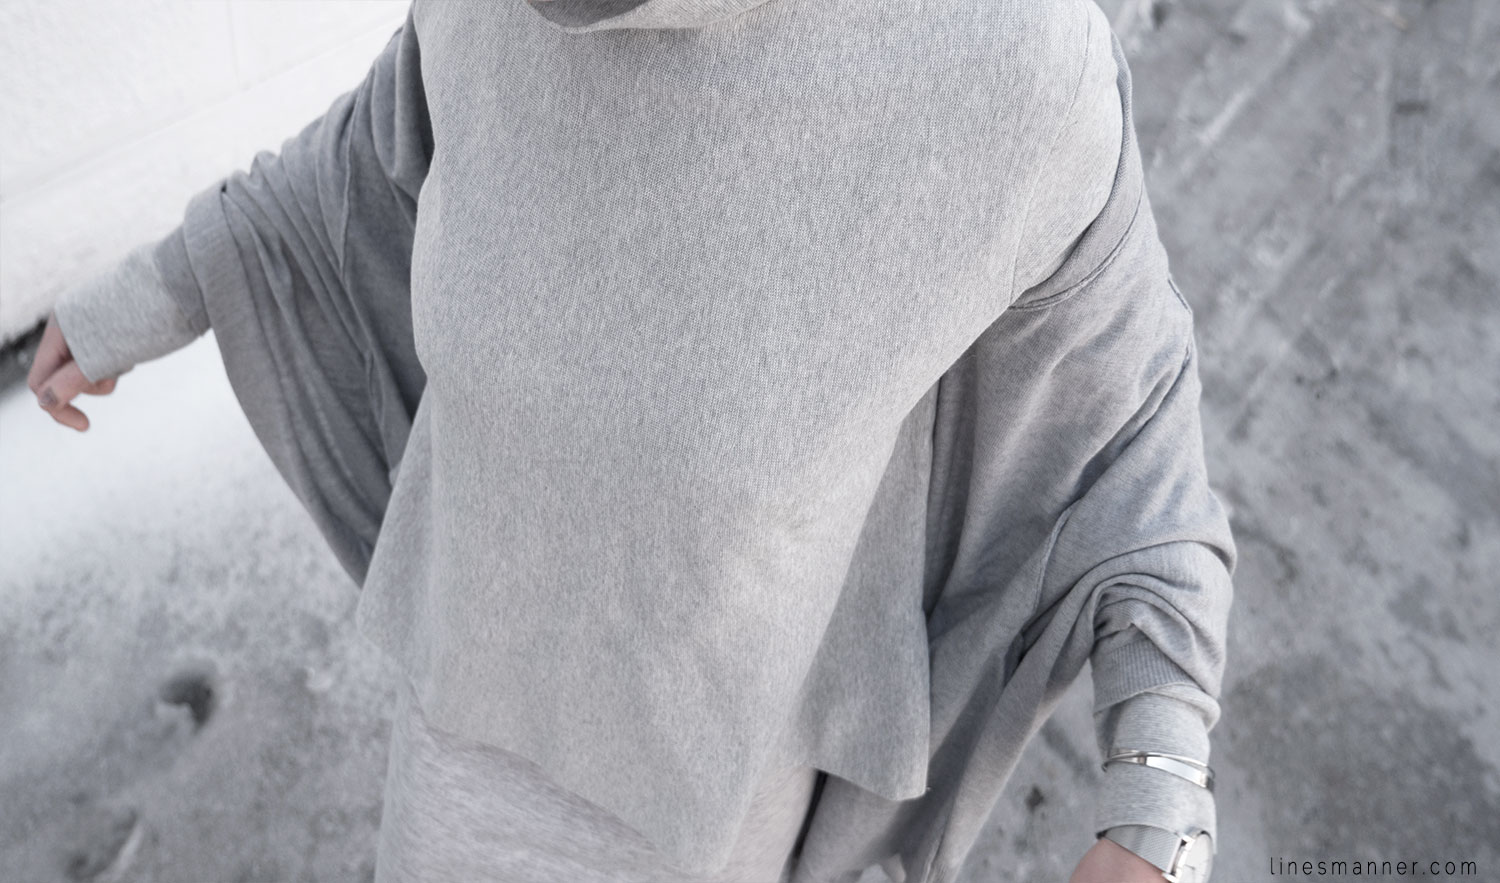 Lines-Manner-Outfit-Grey_on_grey-All_grey-Simplicty-Relaxed-Casual-Textures-Essential-Details-Staples-Minimal-Knit-Cardigan-Coisa-Layering-9